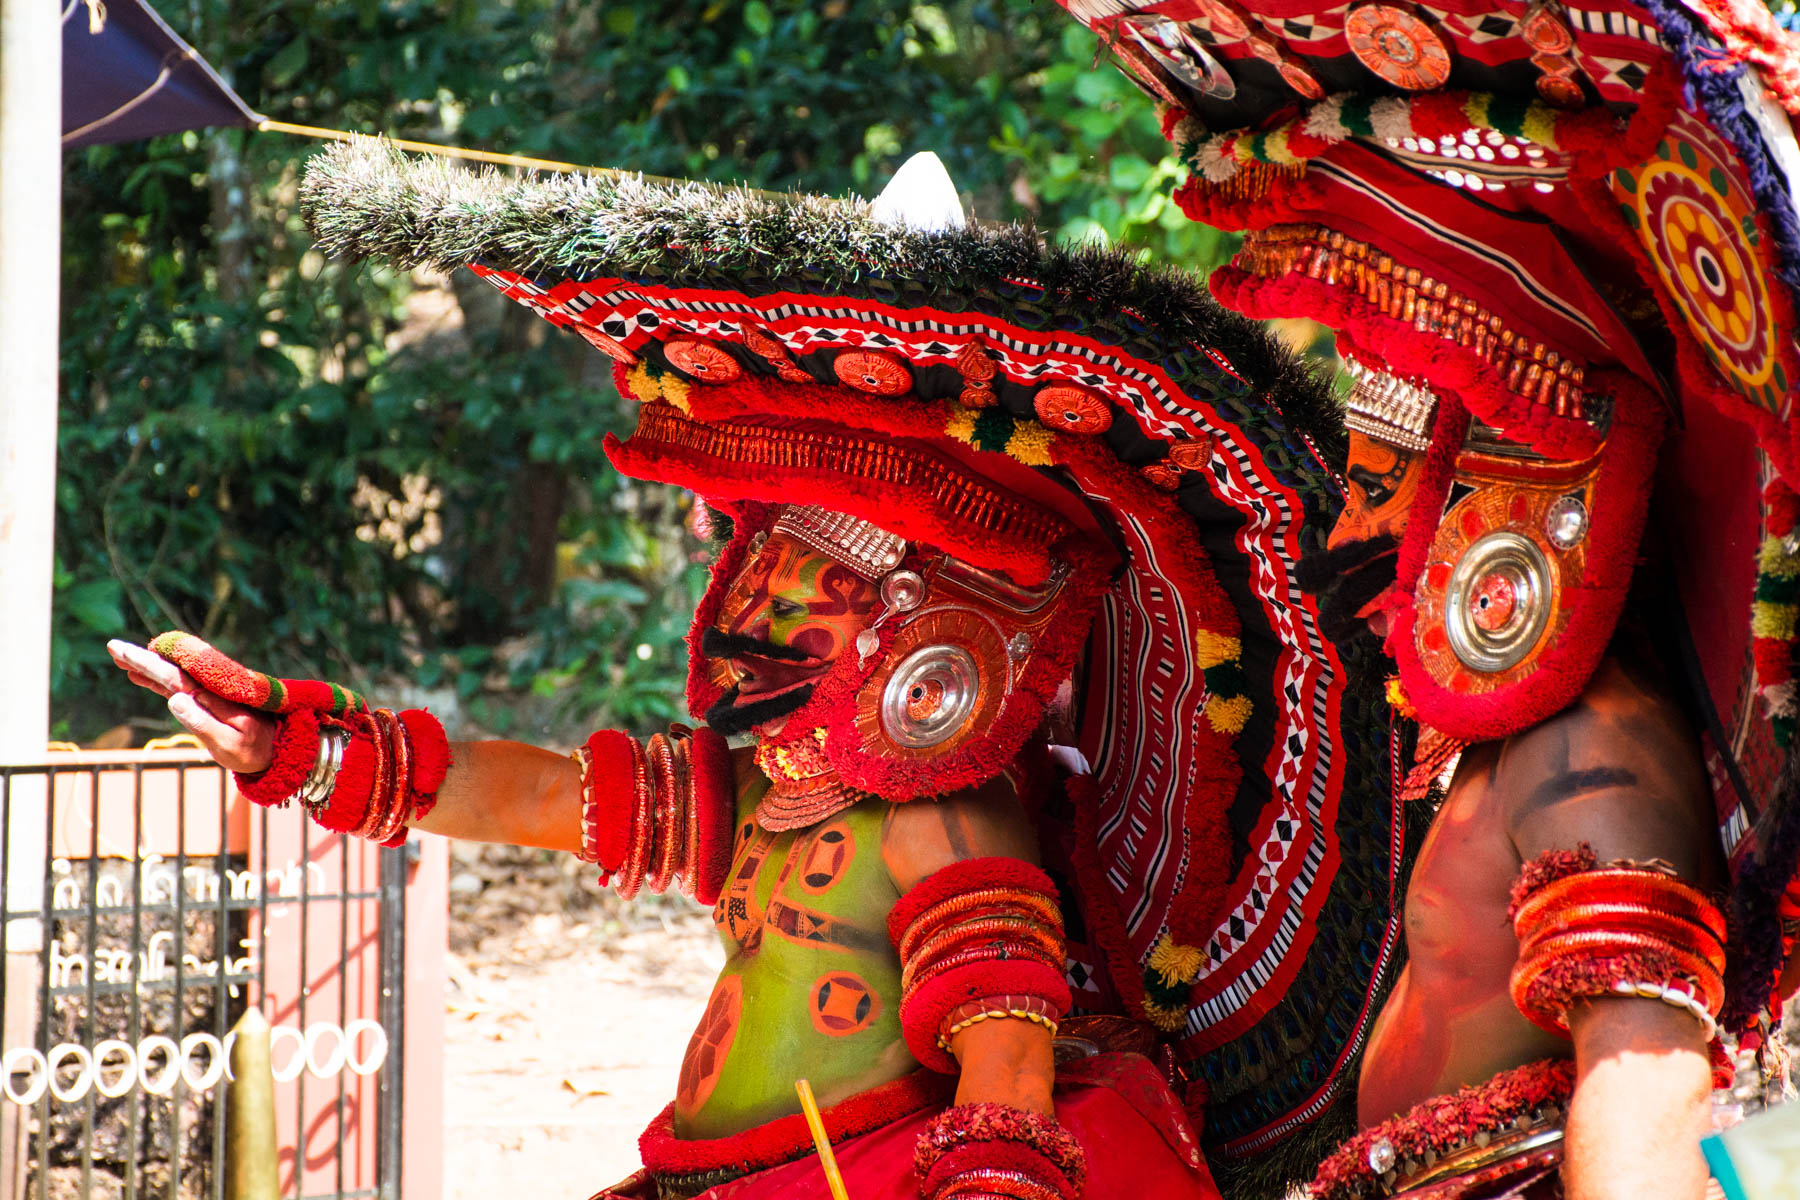 Two Theyyam dancers in full custom